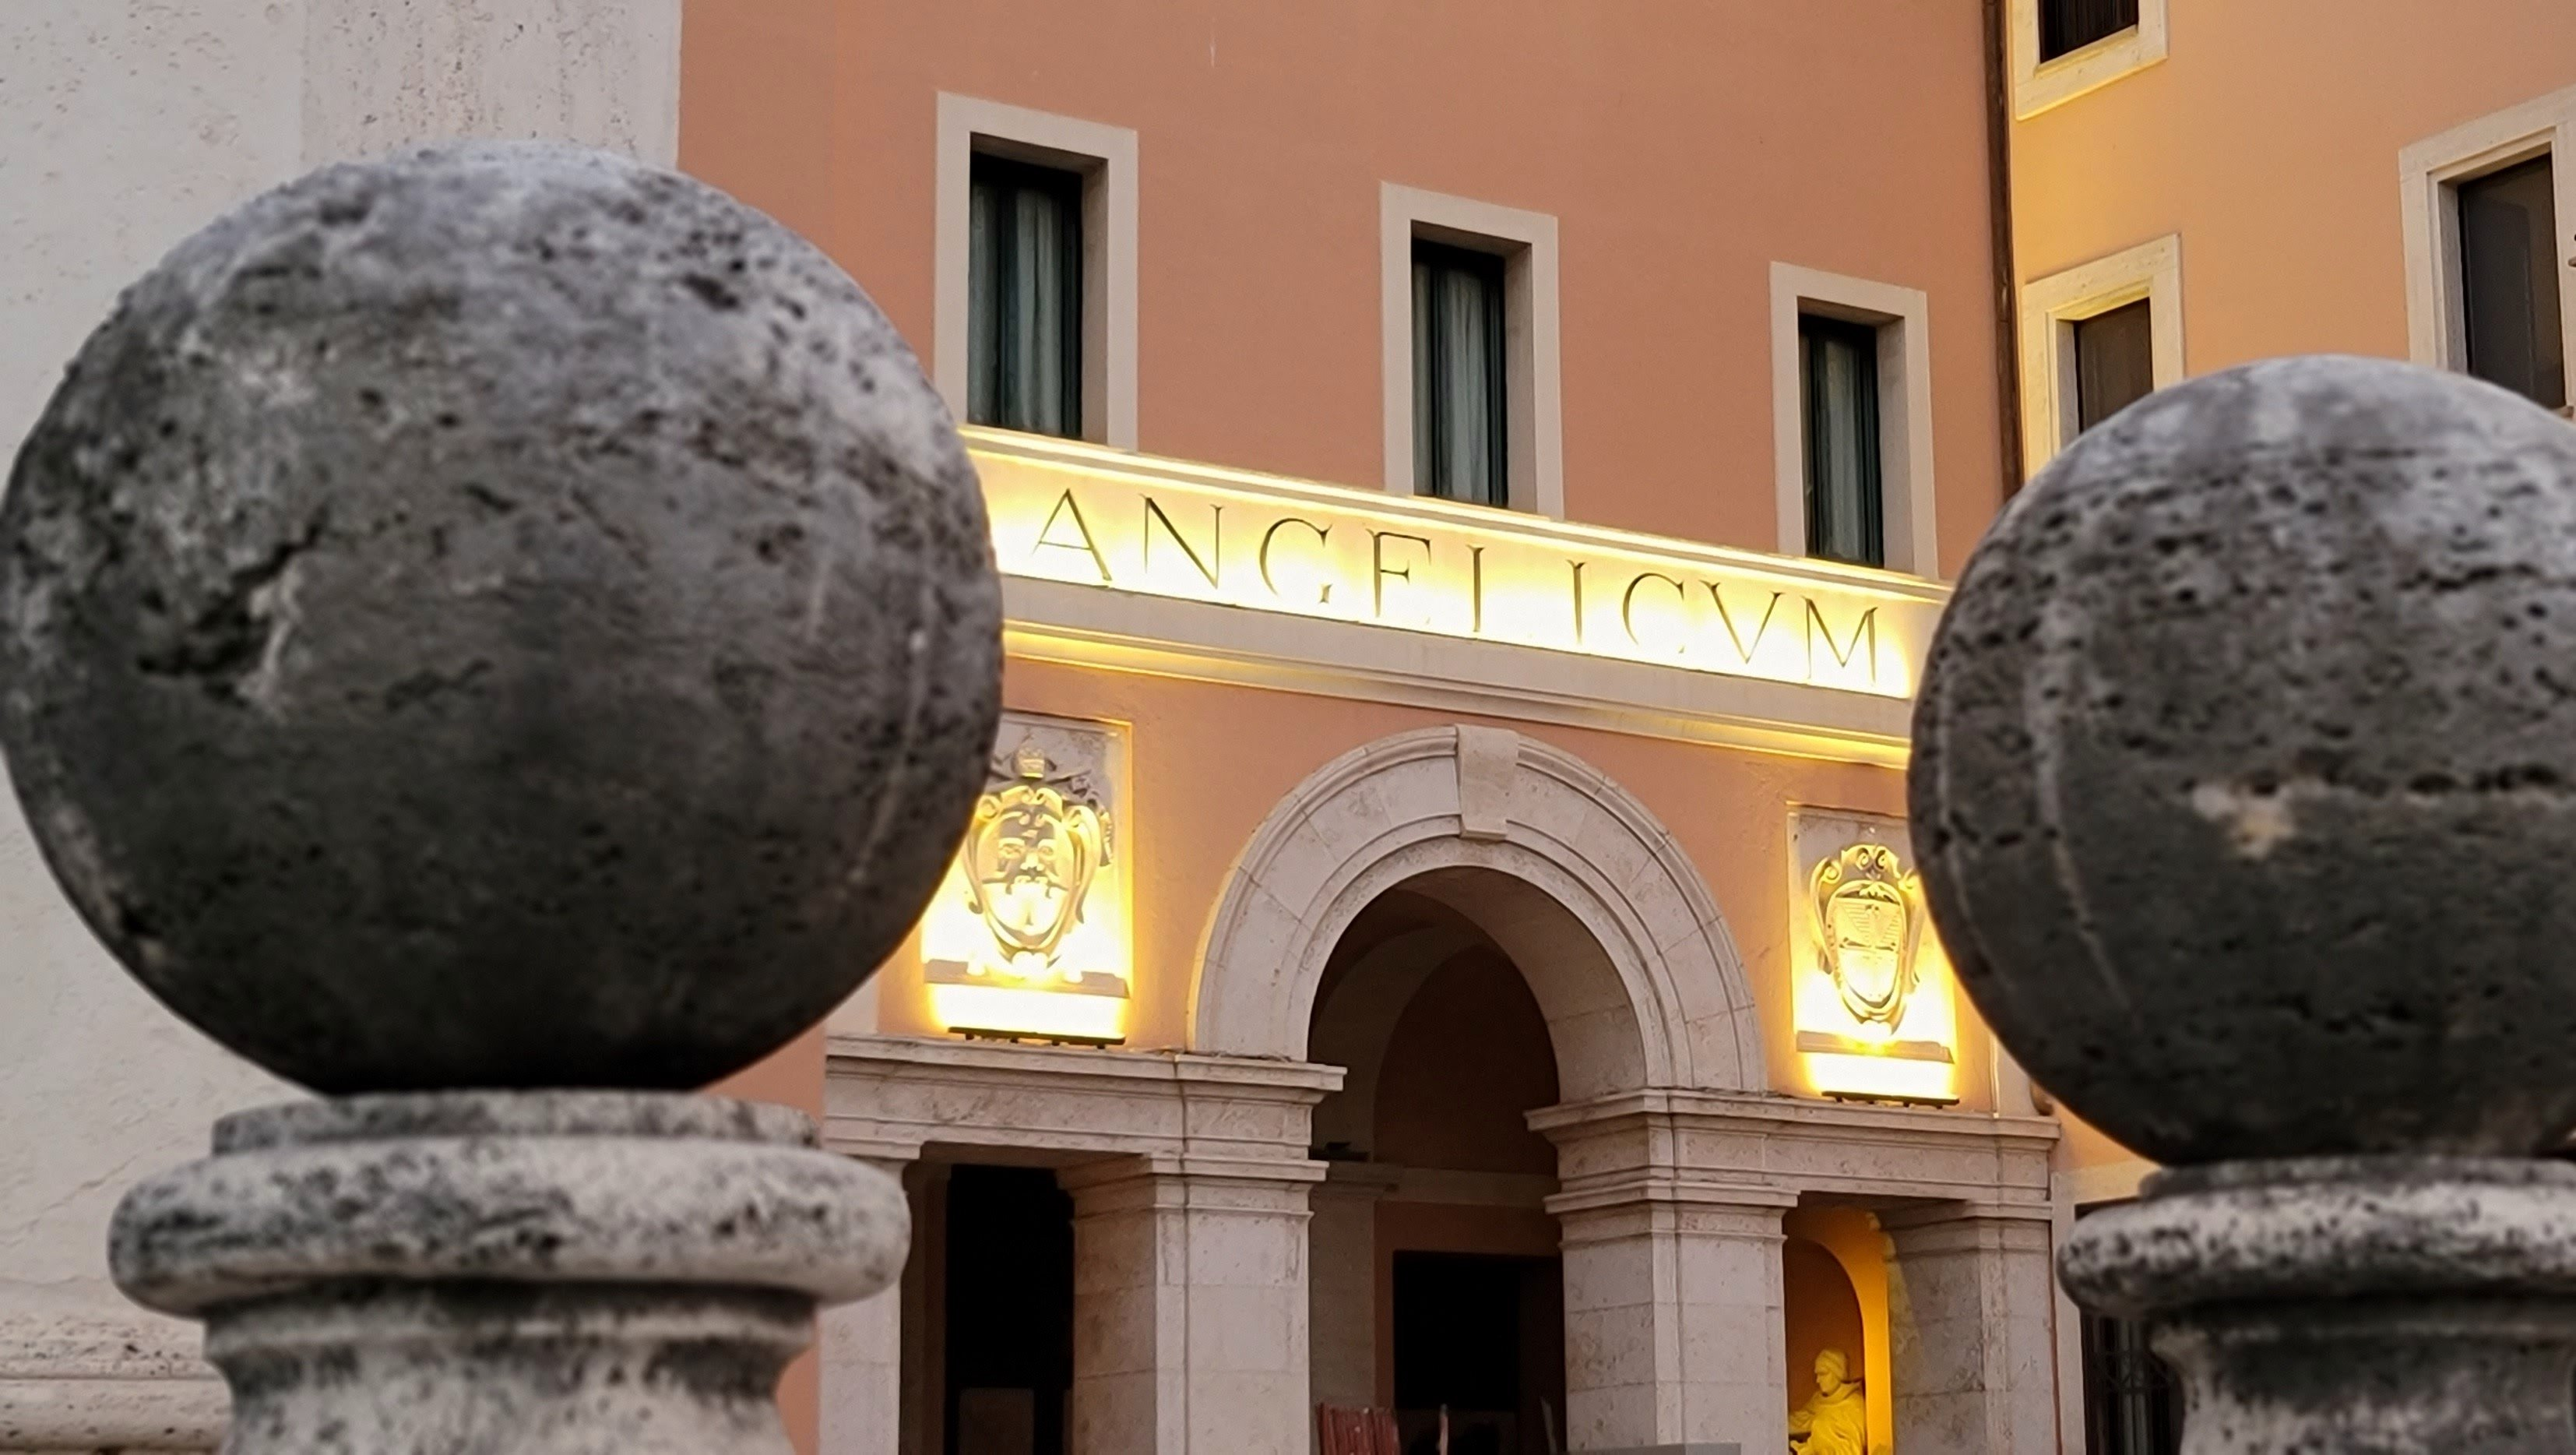 Entrance to the building of the Pontifical University of St. Thomas Aquinas (Angelicum)